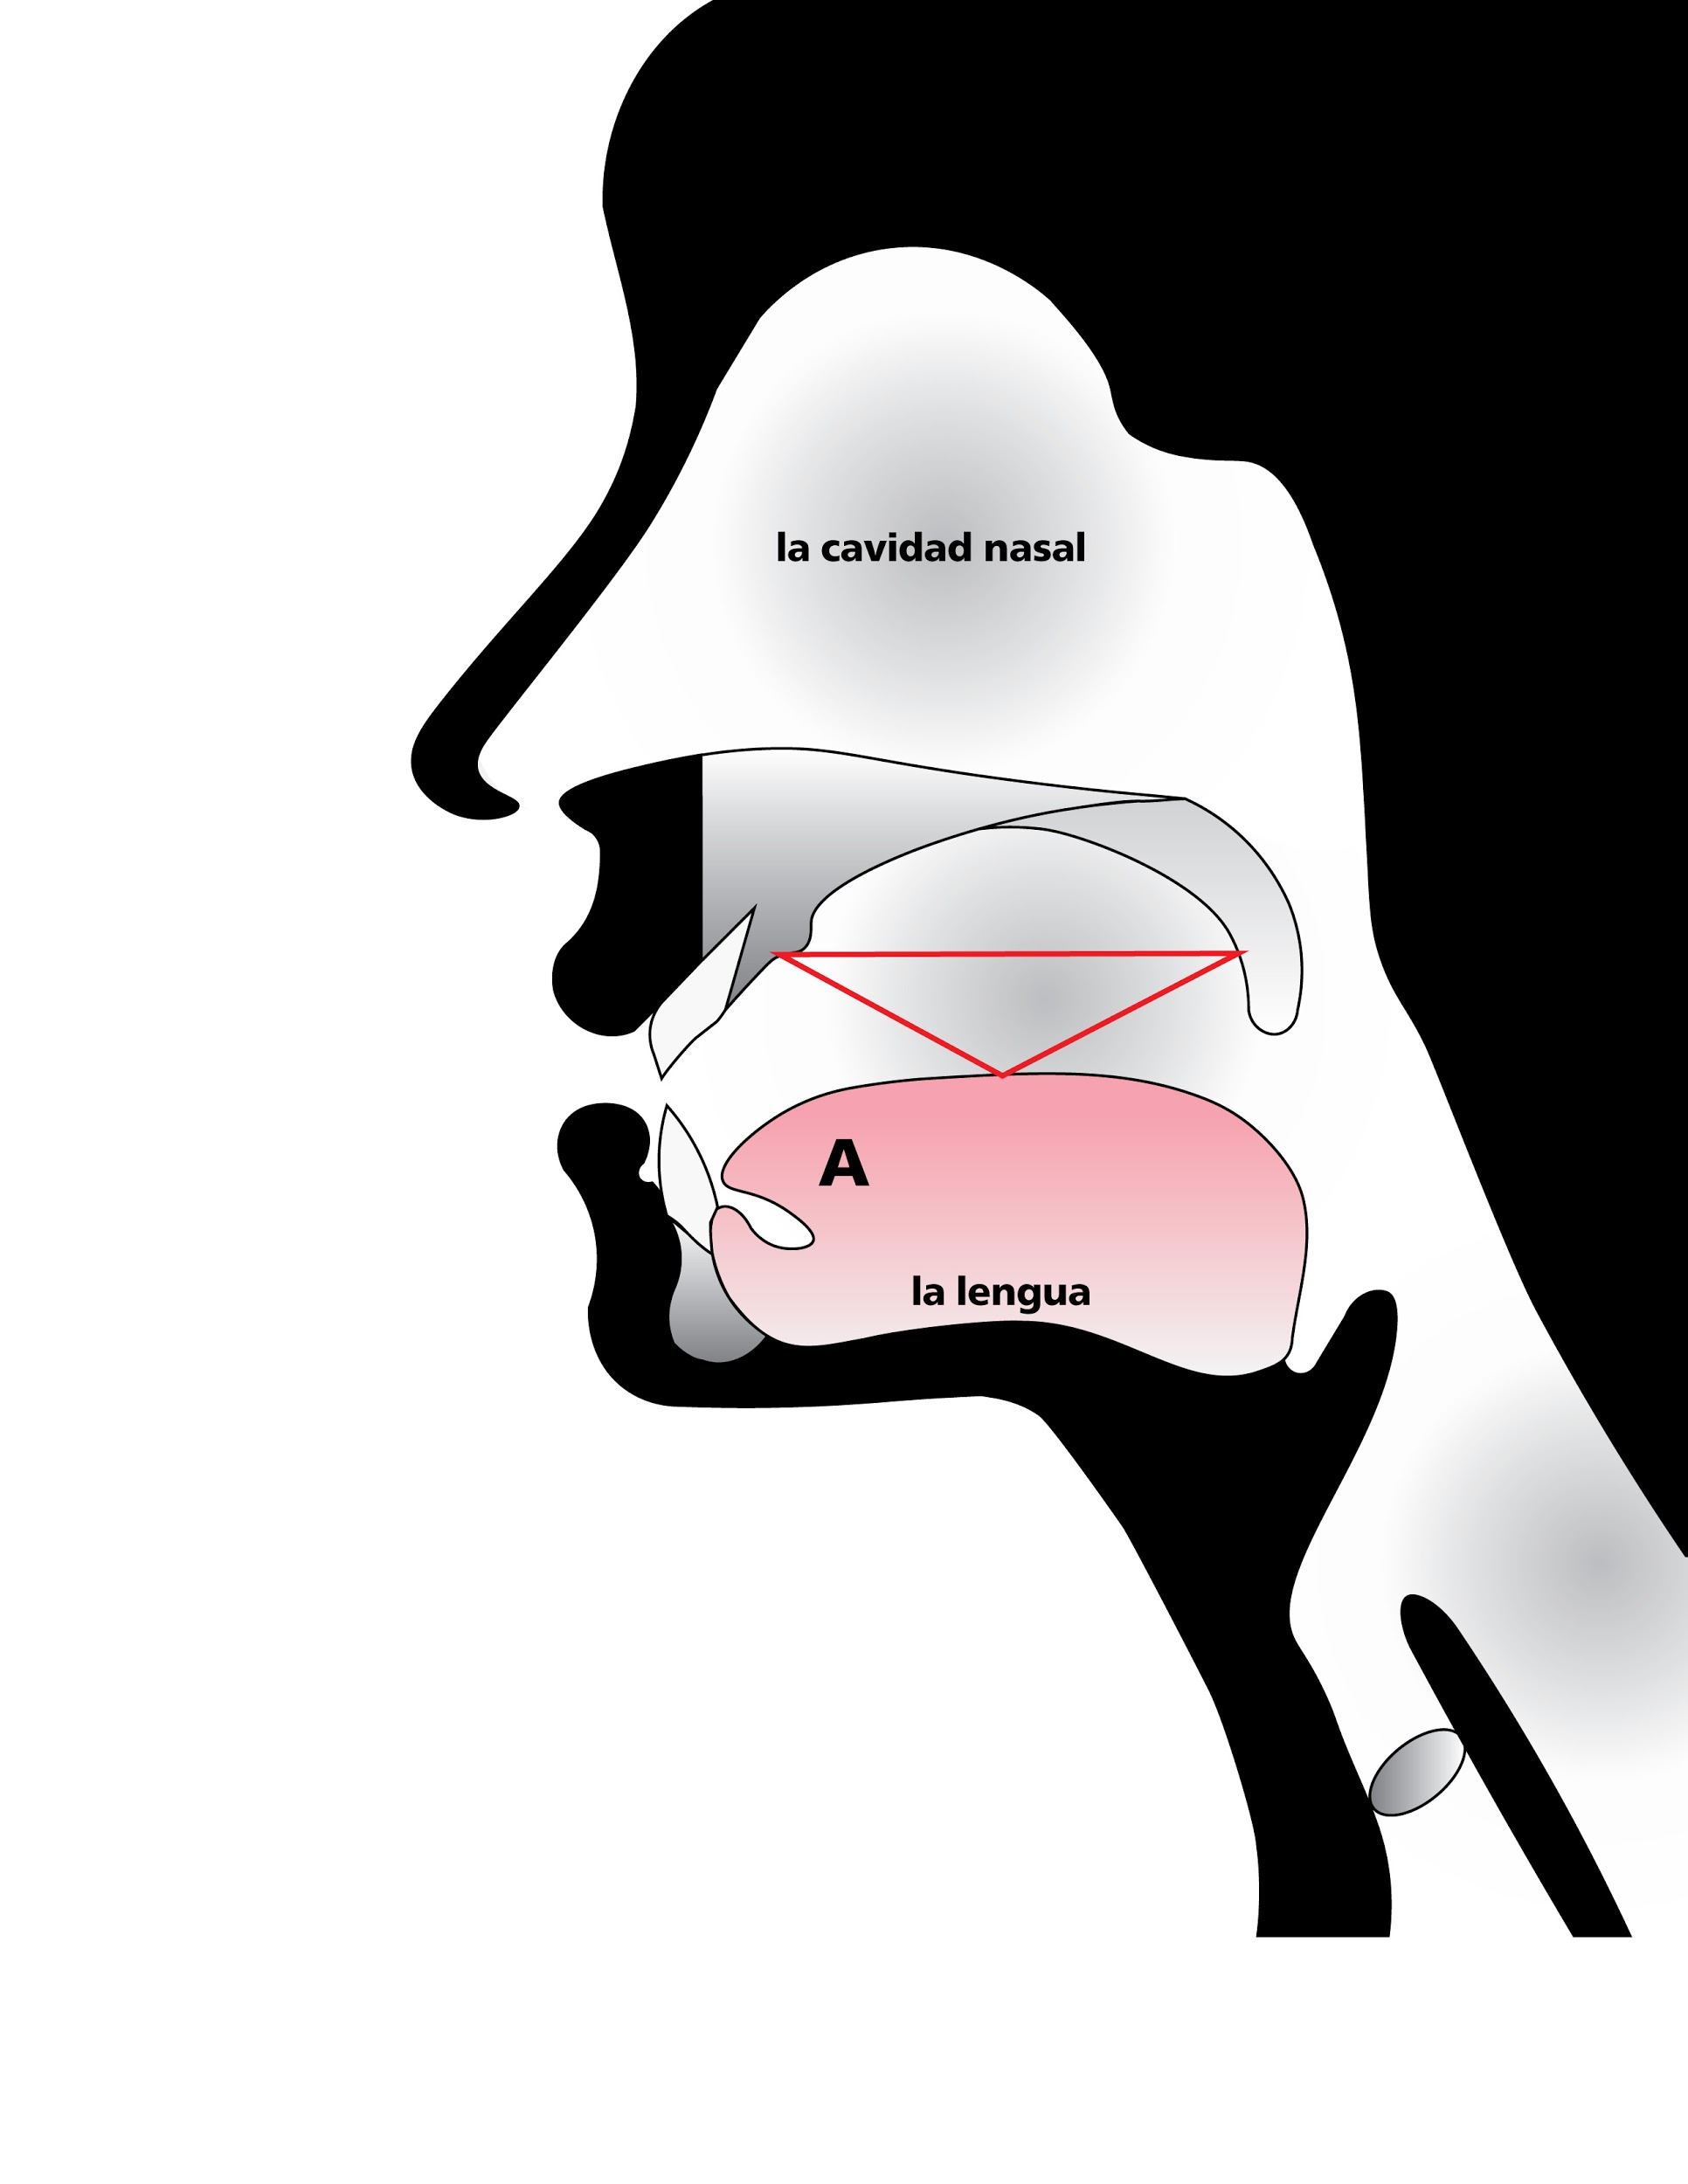 Anatomical sketch of nasal cavity emphasizing space in roof of mouth, in Spanish